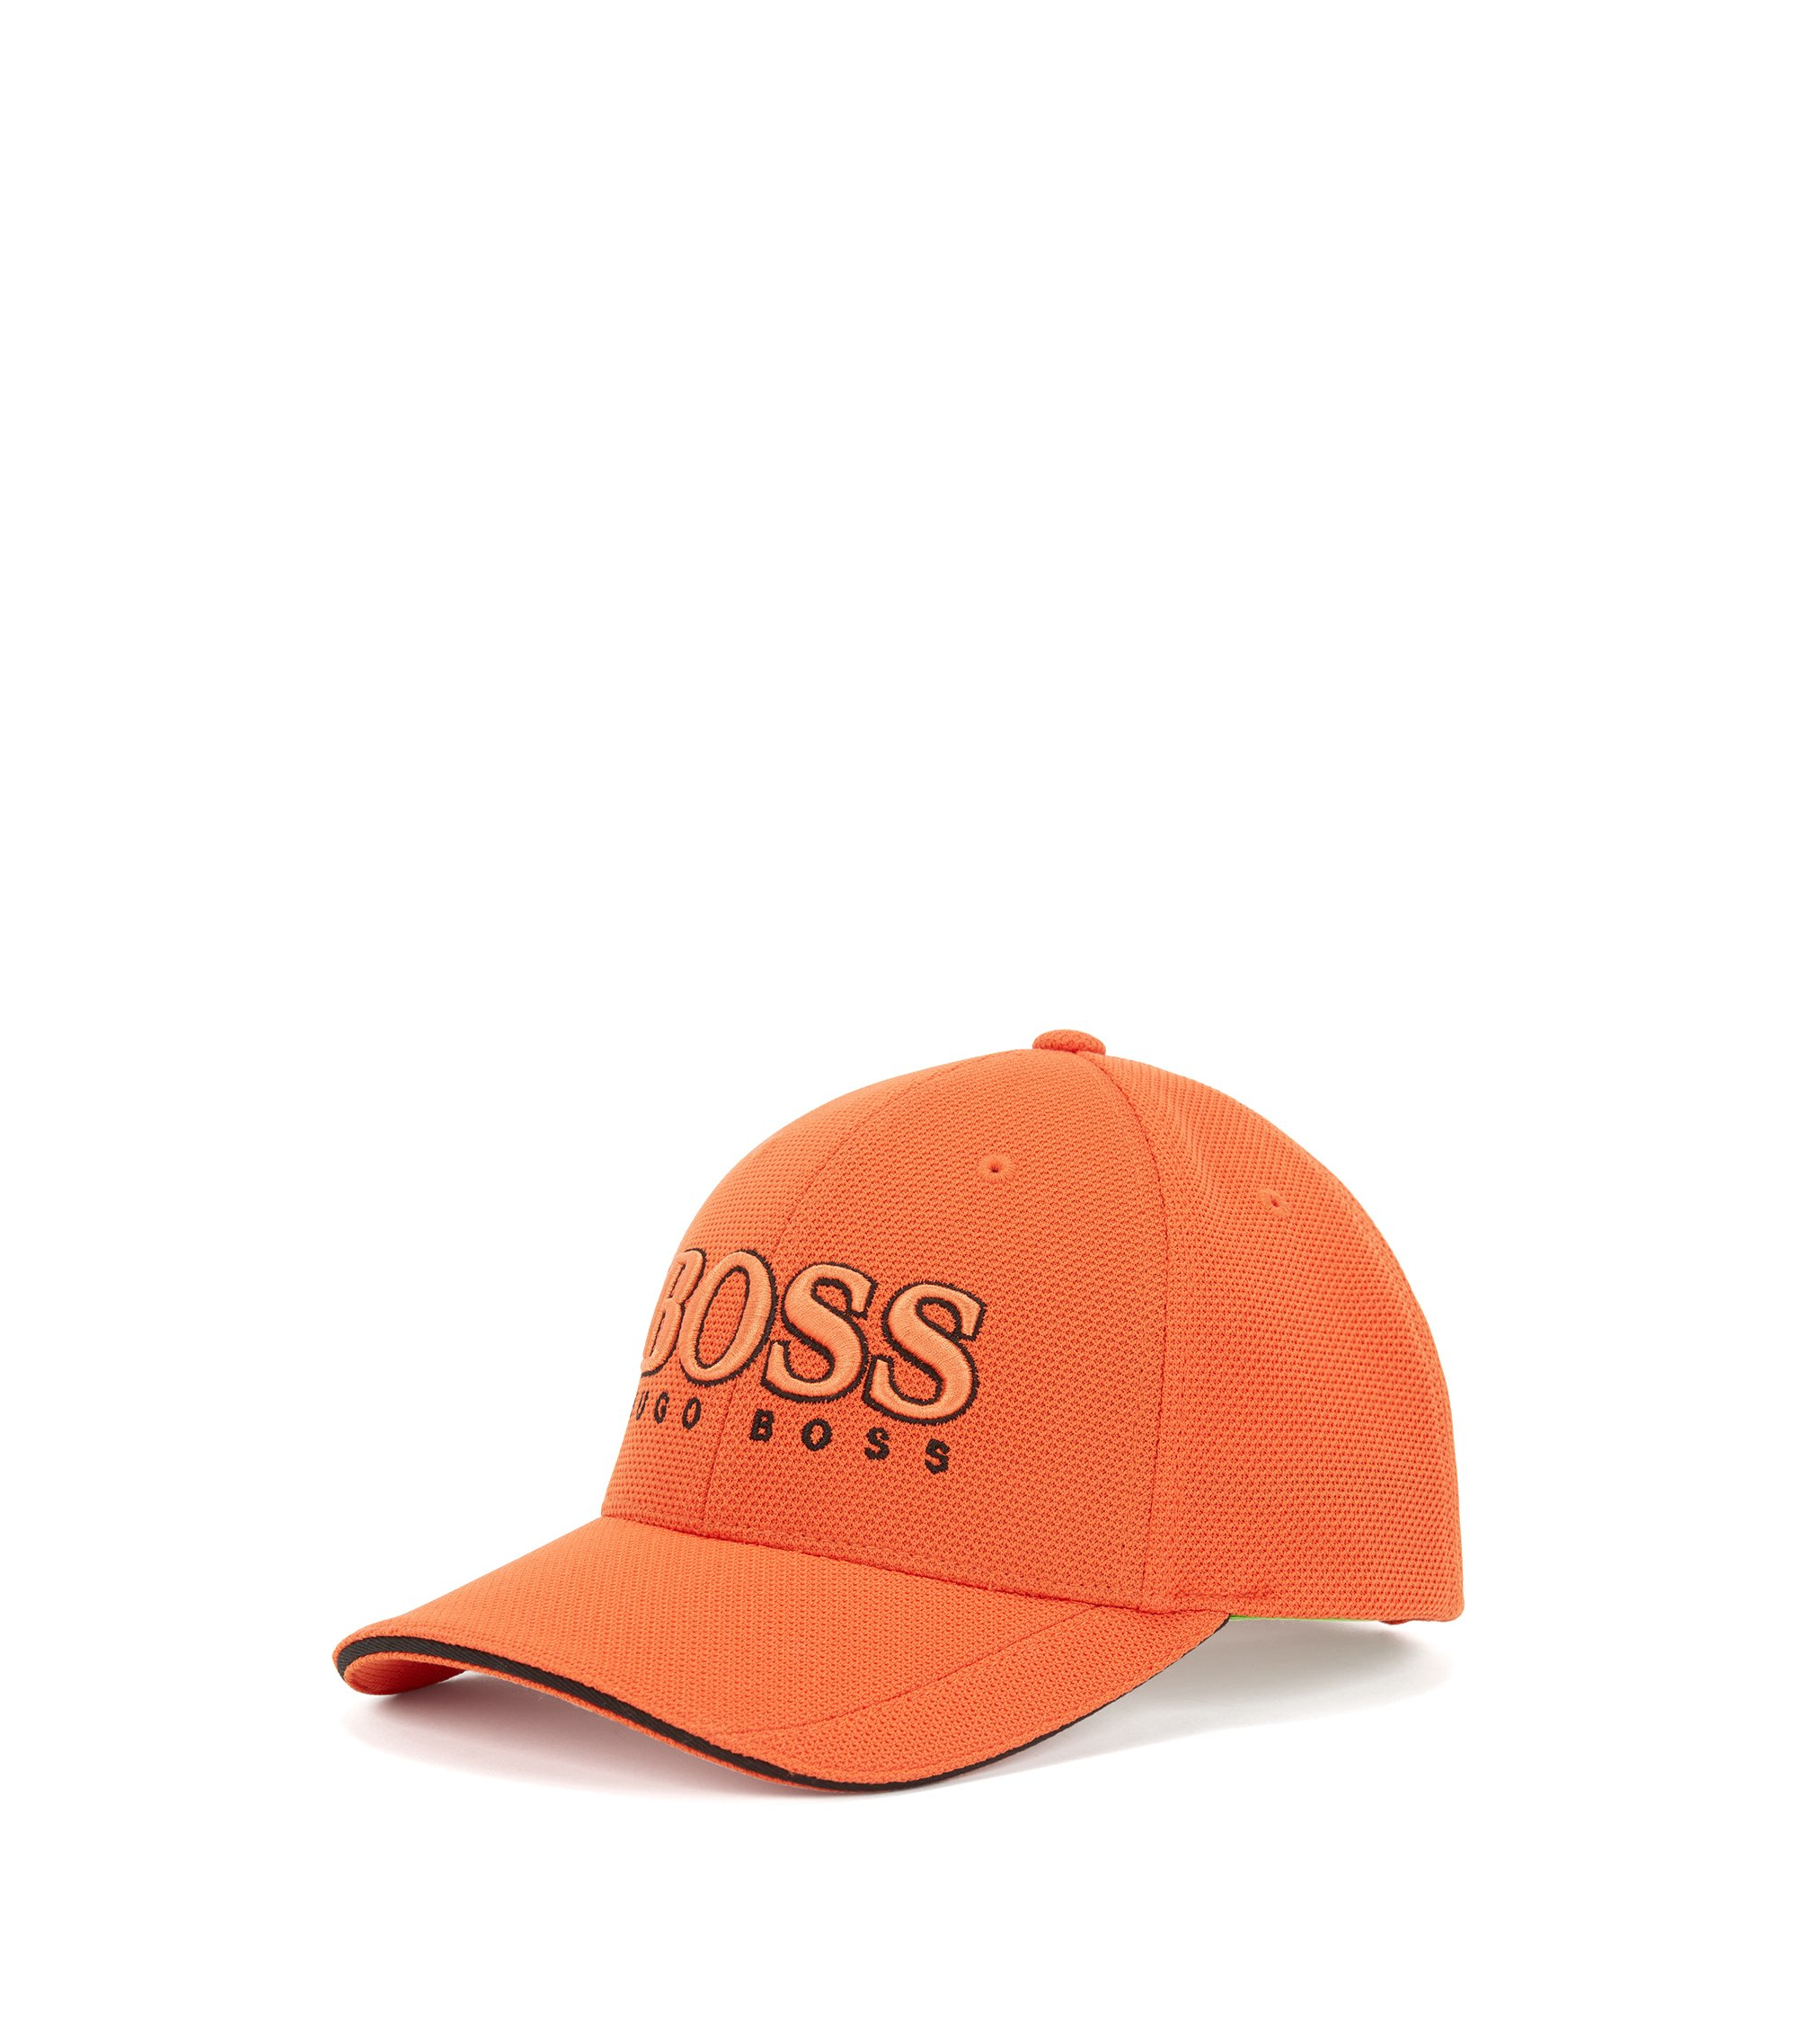 Casquette de base-ball en piqué technique , Orange